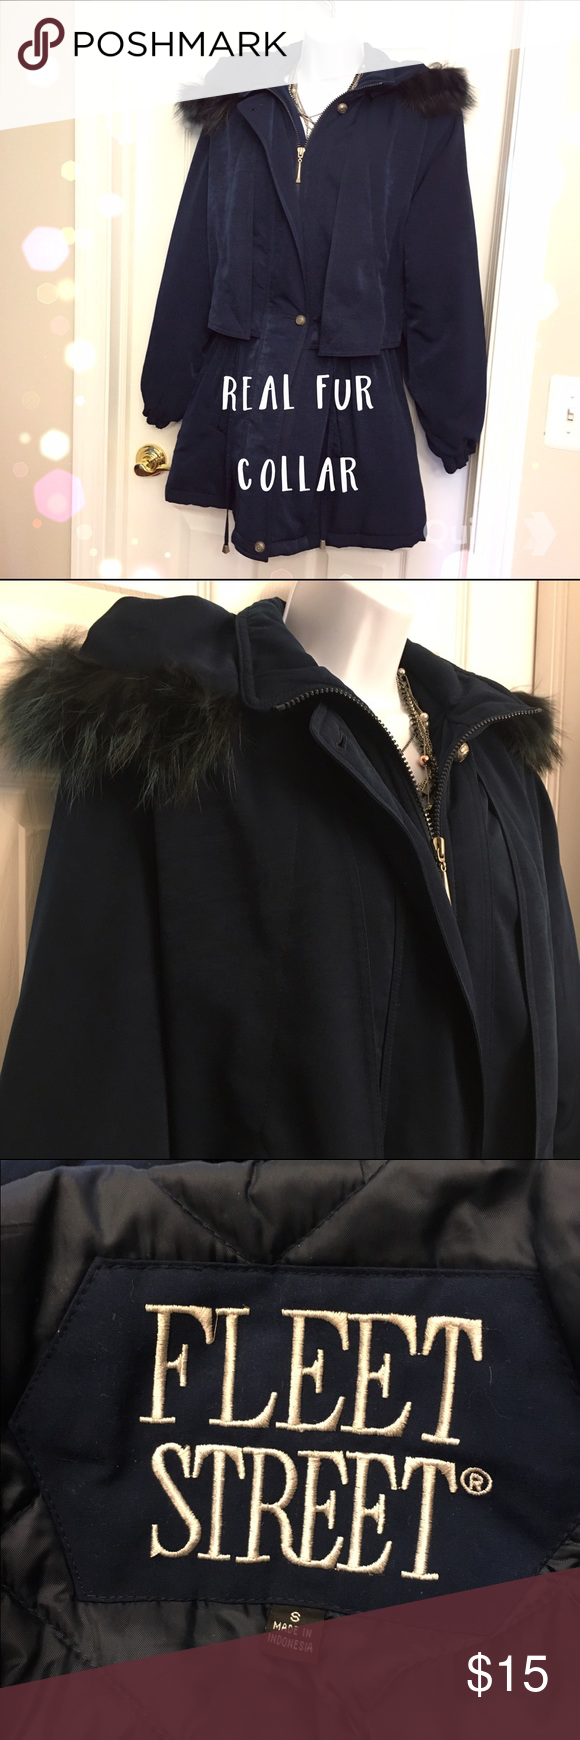 Long Winter Coat With Removable Fur Collar Super cute winter coat by Fleet Street. This coat is super warm has an adjustable drawstring waist and a removable real fur collar! The coat is a dark blue. Jackets & Coats